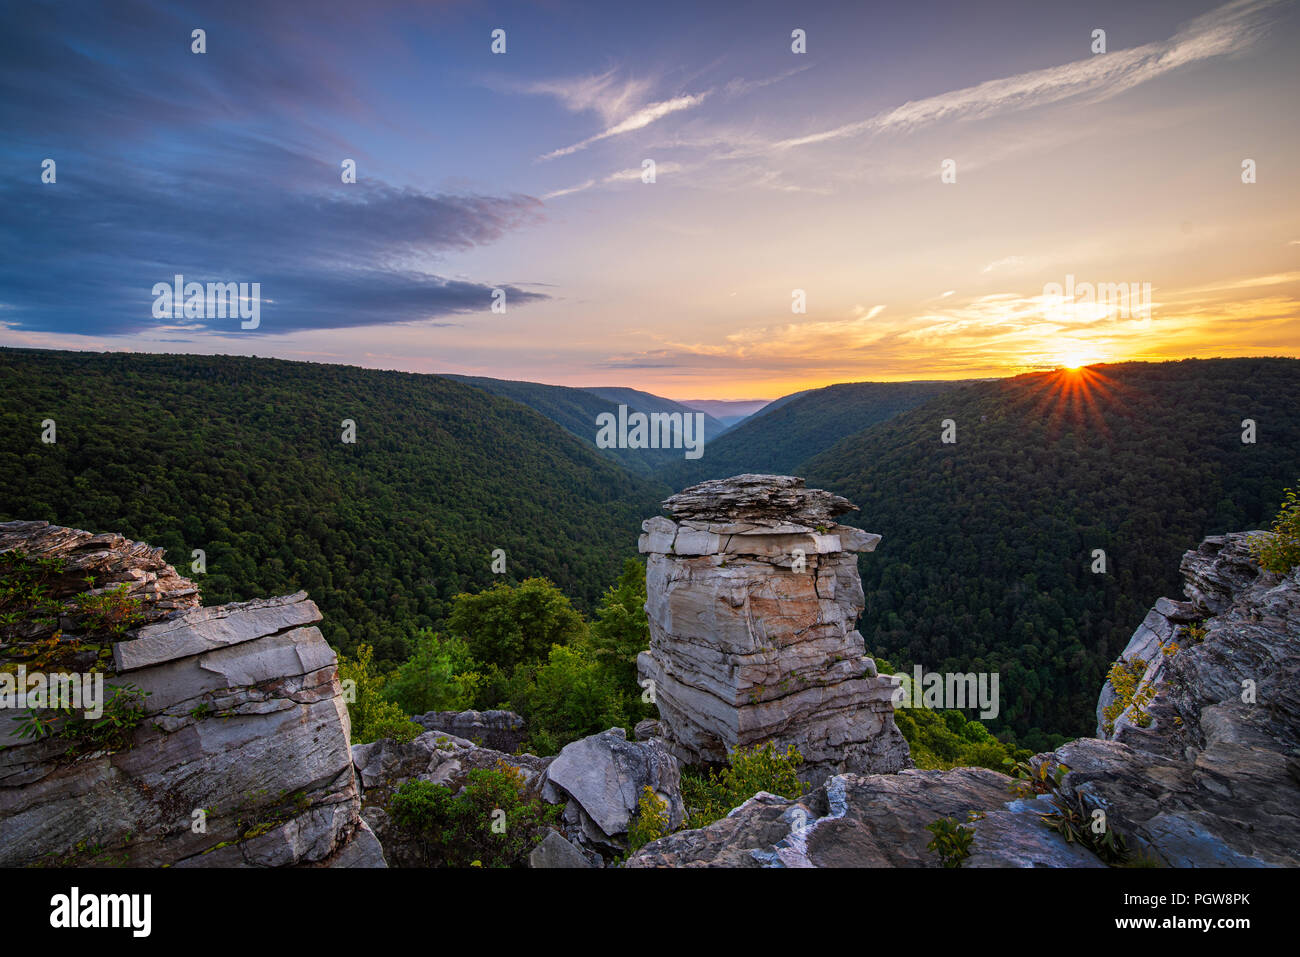 The sunsets over Blackwater Canyon from Lindy Point in Blackwater Falls State Park, West Virginia. - Stock Image